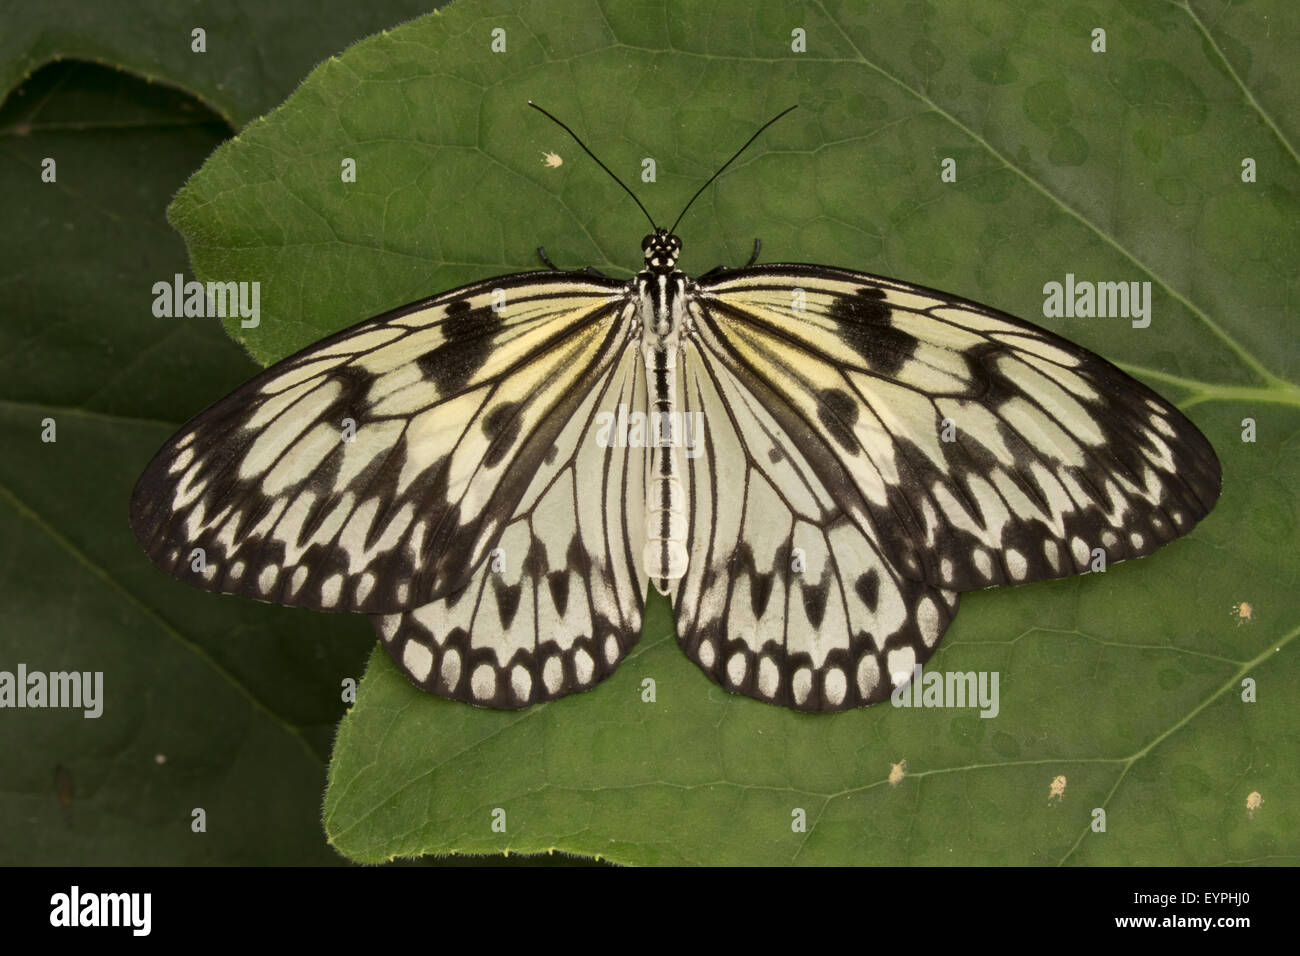 paper kite, rice paper, or large tree nymph butterfly (Idea leuconoe) native to Asia, captive - Stock Image